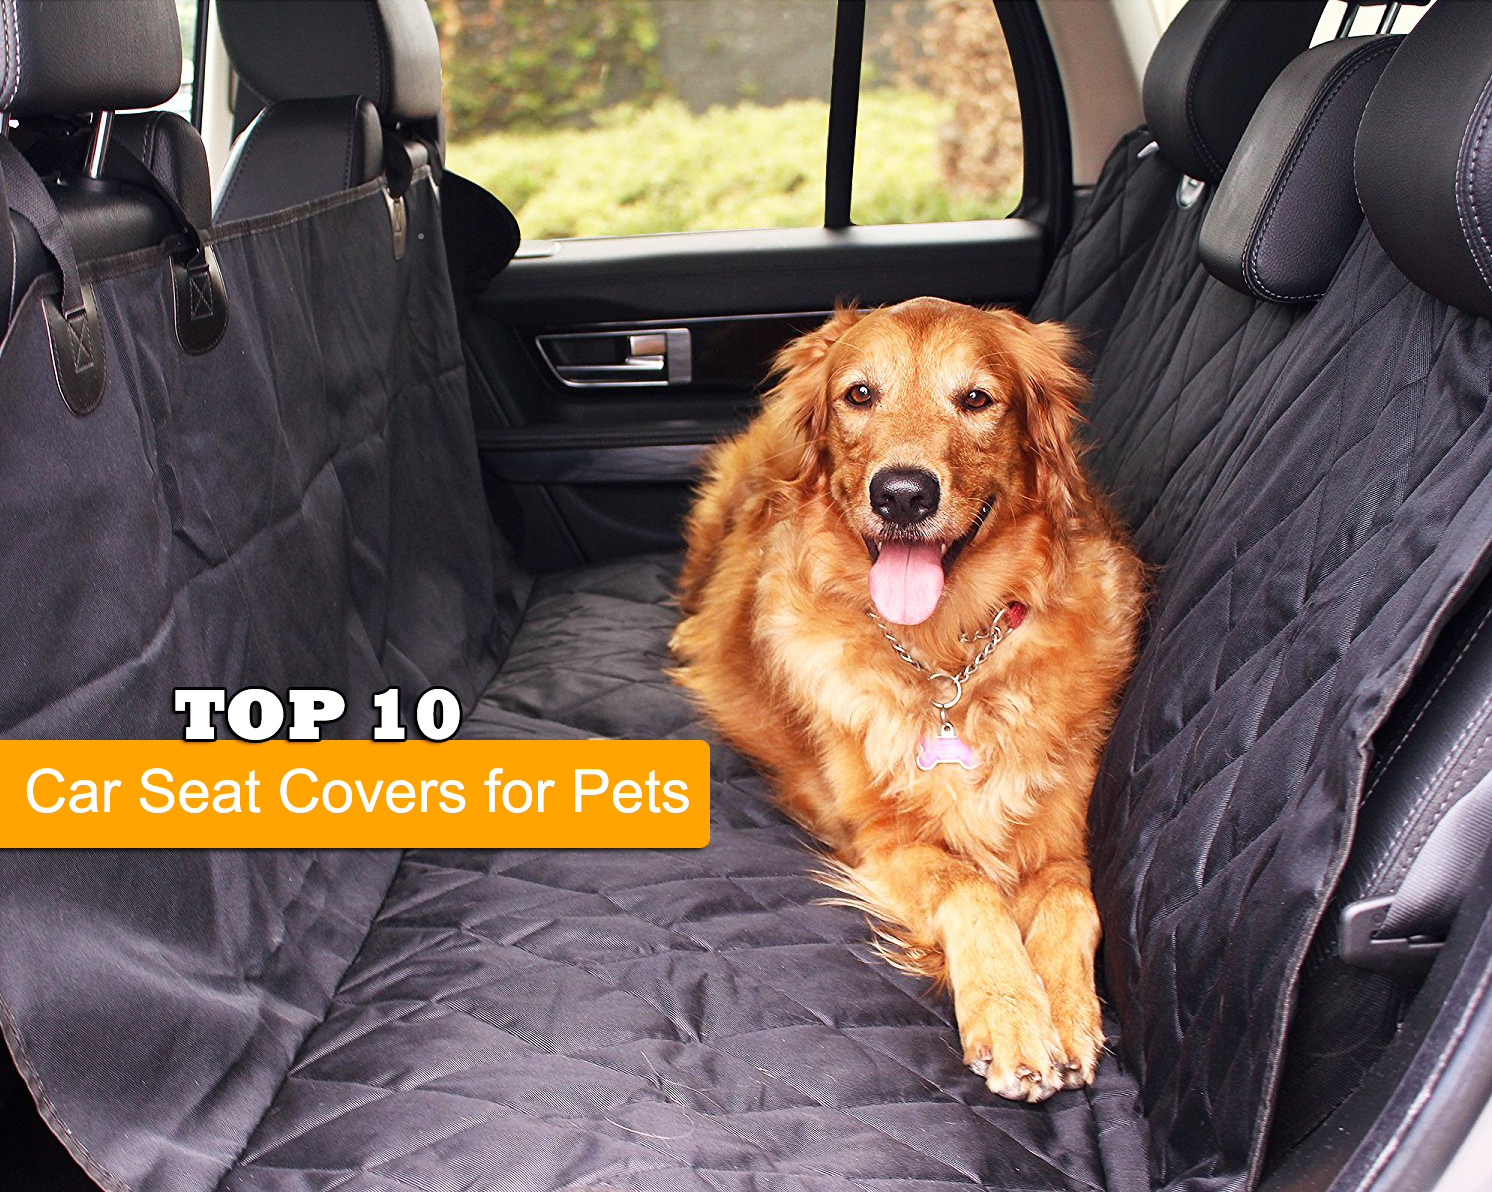 10 Best Car Seat Covers for Pets